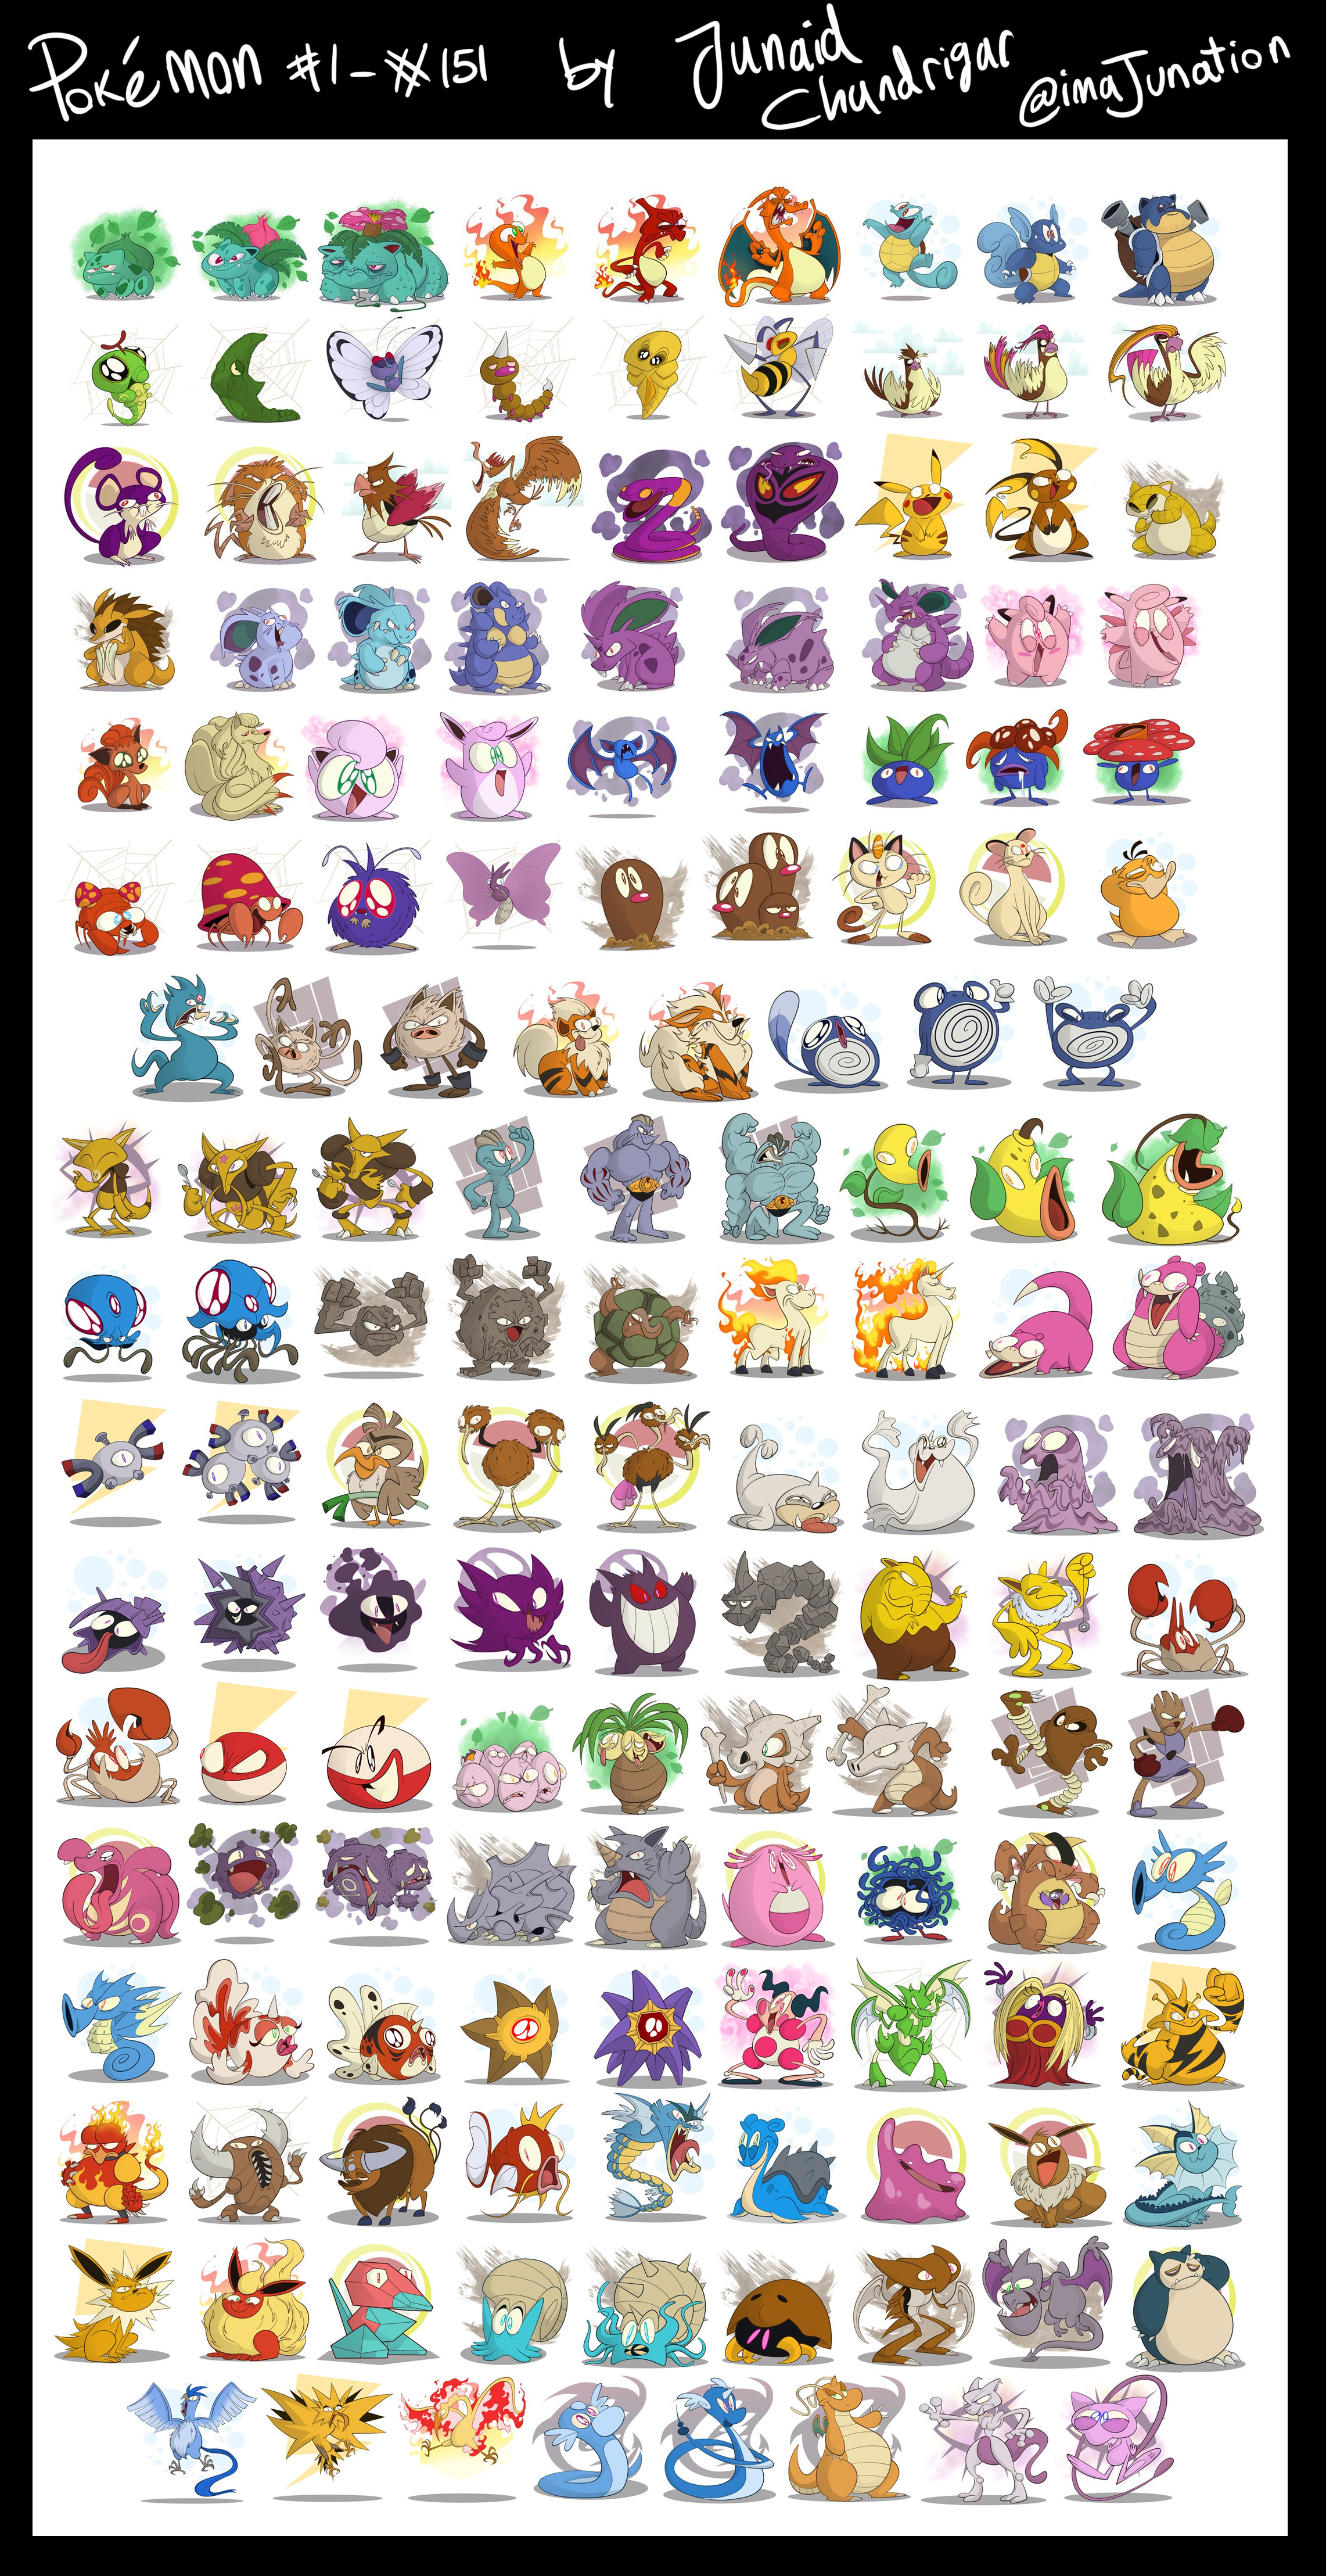 I'm drawing every Pokémon in my style. Gen 1 finished